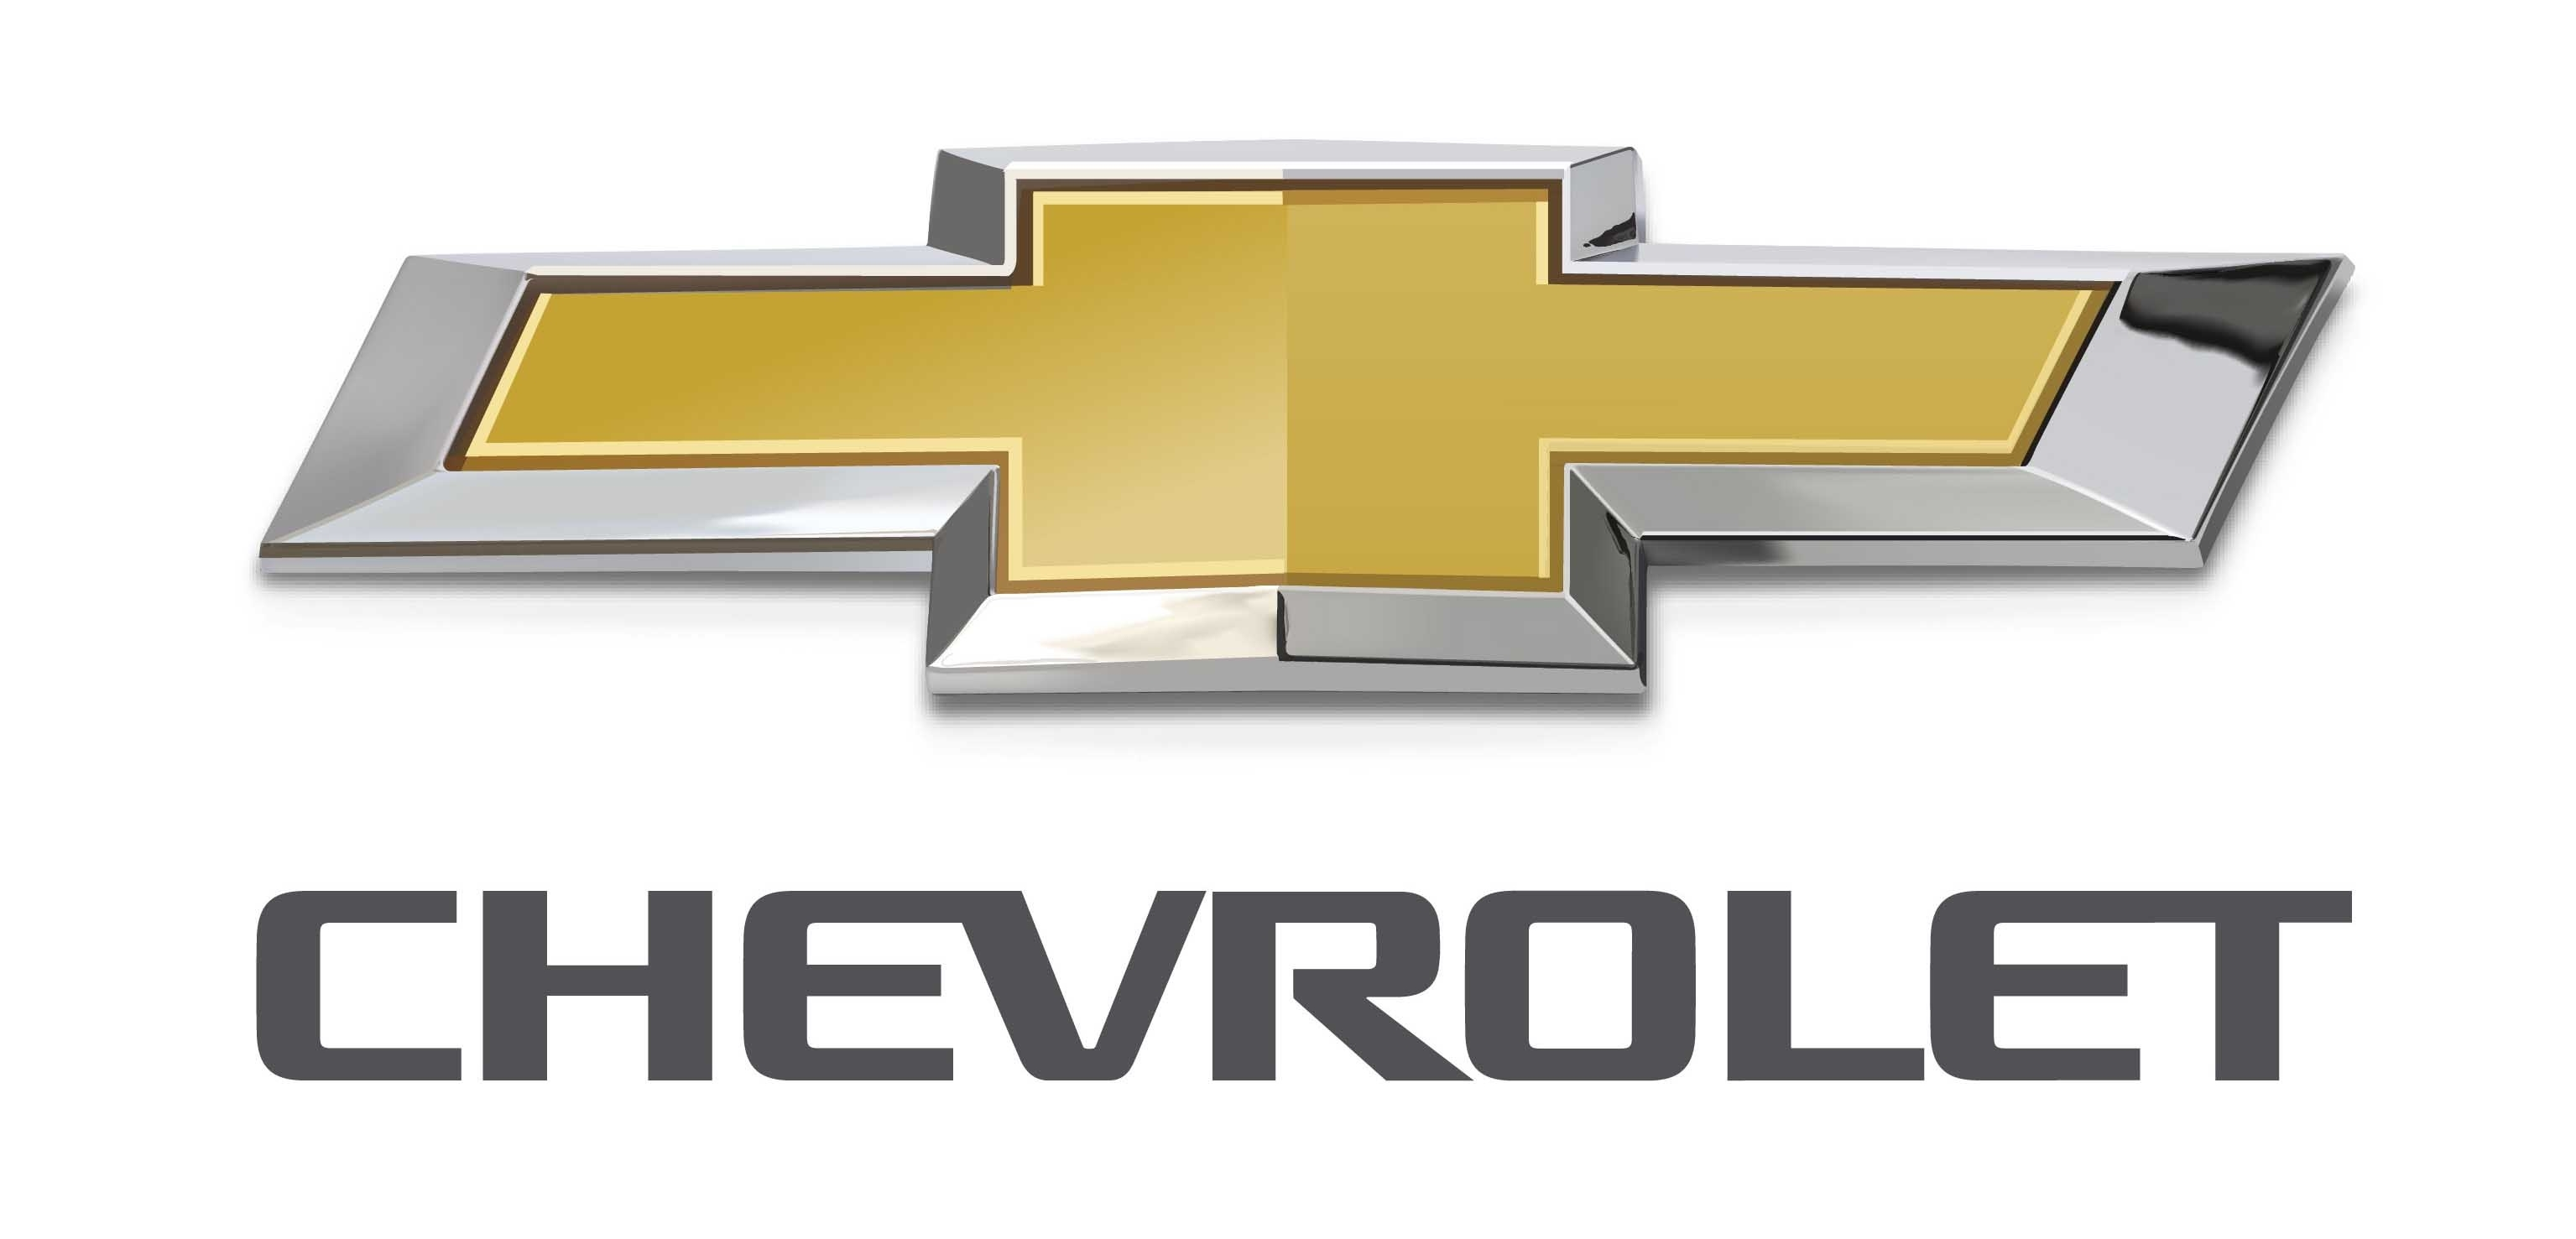 chevrolet � logos download